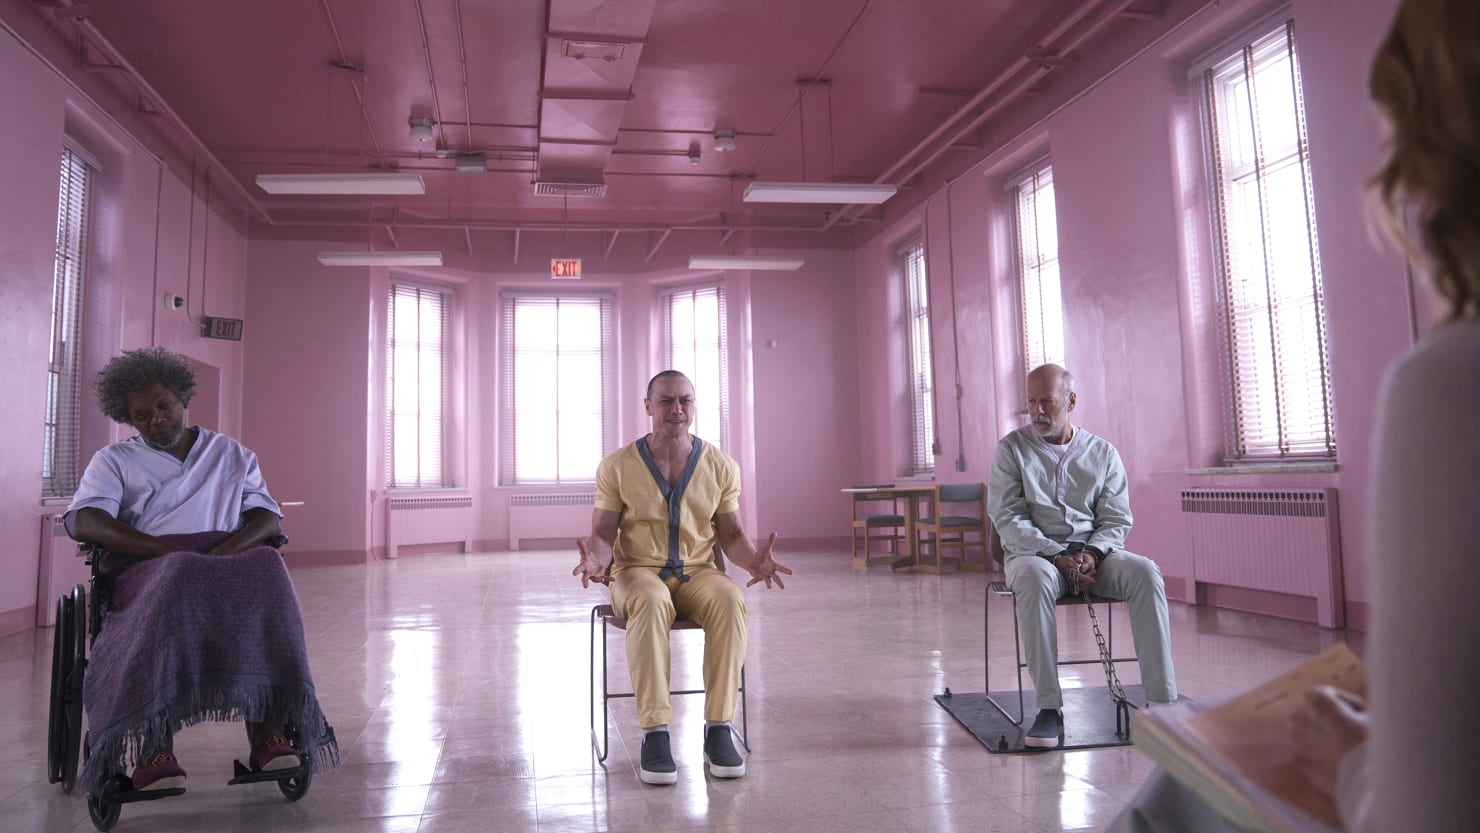 5 Star Auto >> 'Glass' Is M. Night Shyamalan's Big Middle Finger to His ...